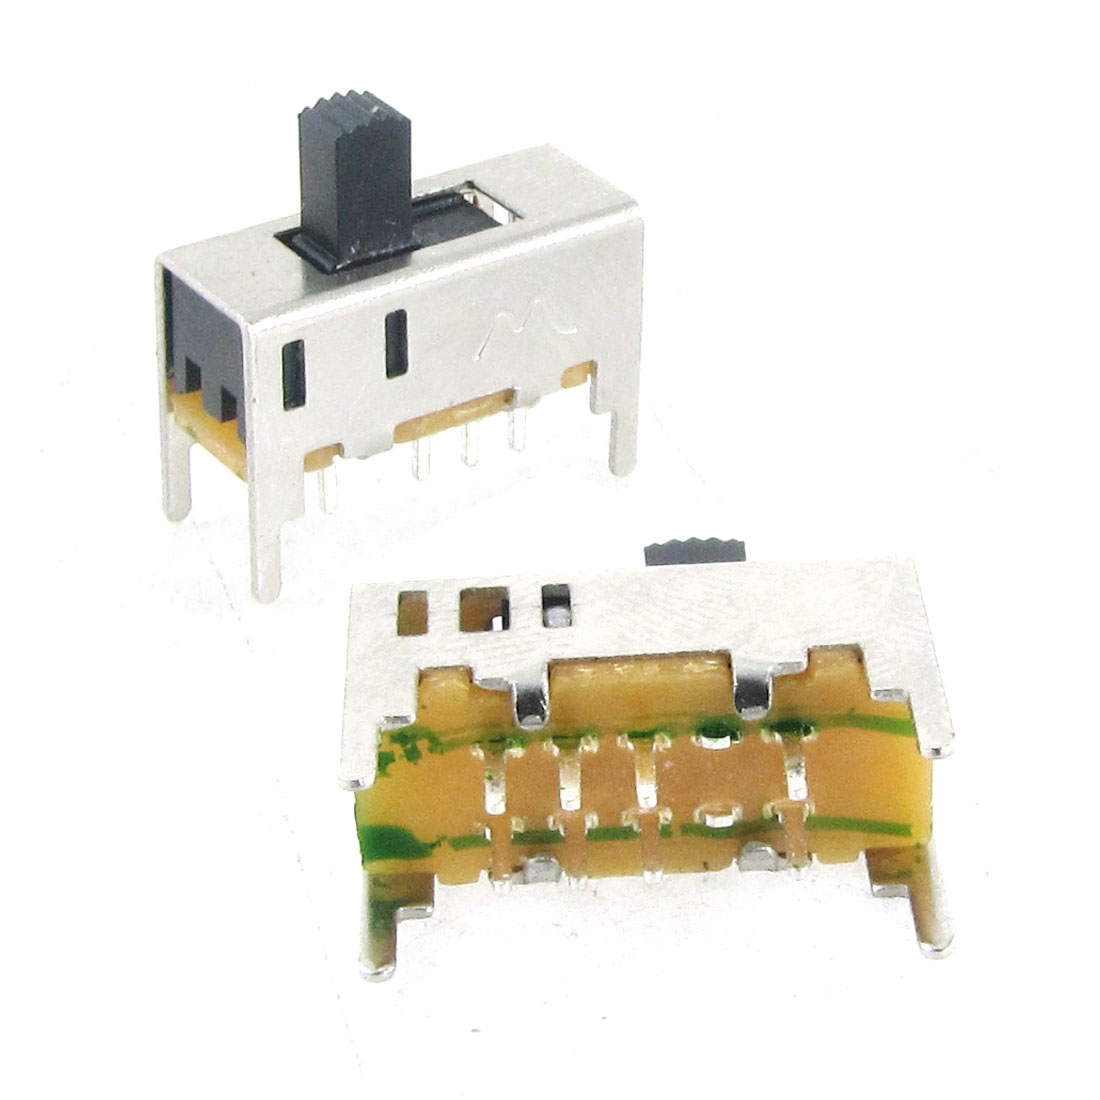 5 Pcs DC 50V 0.5A 3 Position DP3T 2P3T Mini Vertical Slide Switch 8 Pin PCB DIY